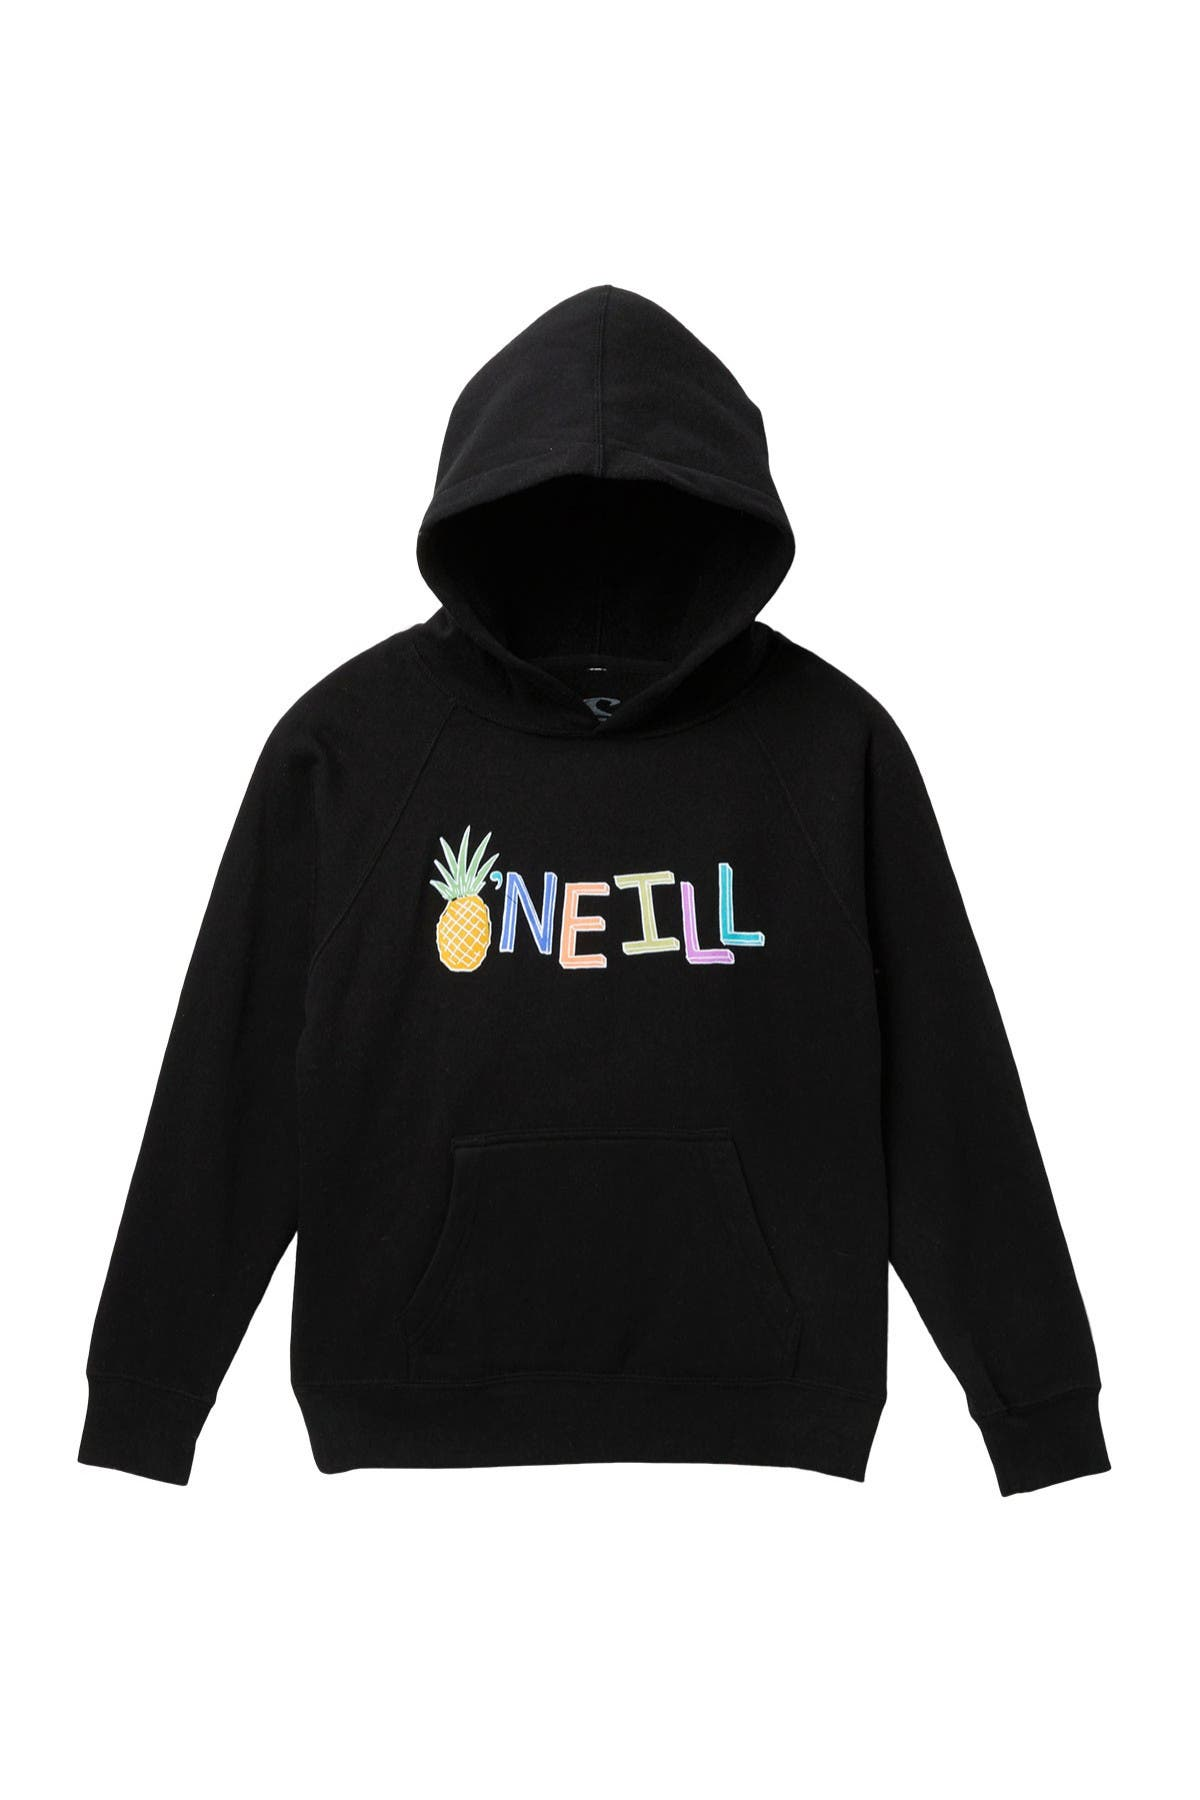 Image of O'Neill Journey Graphic Print Hoodie